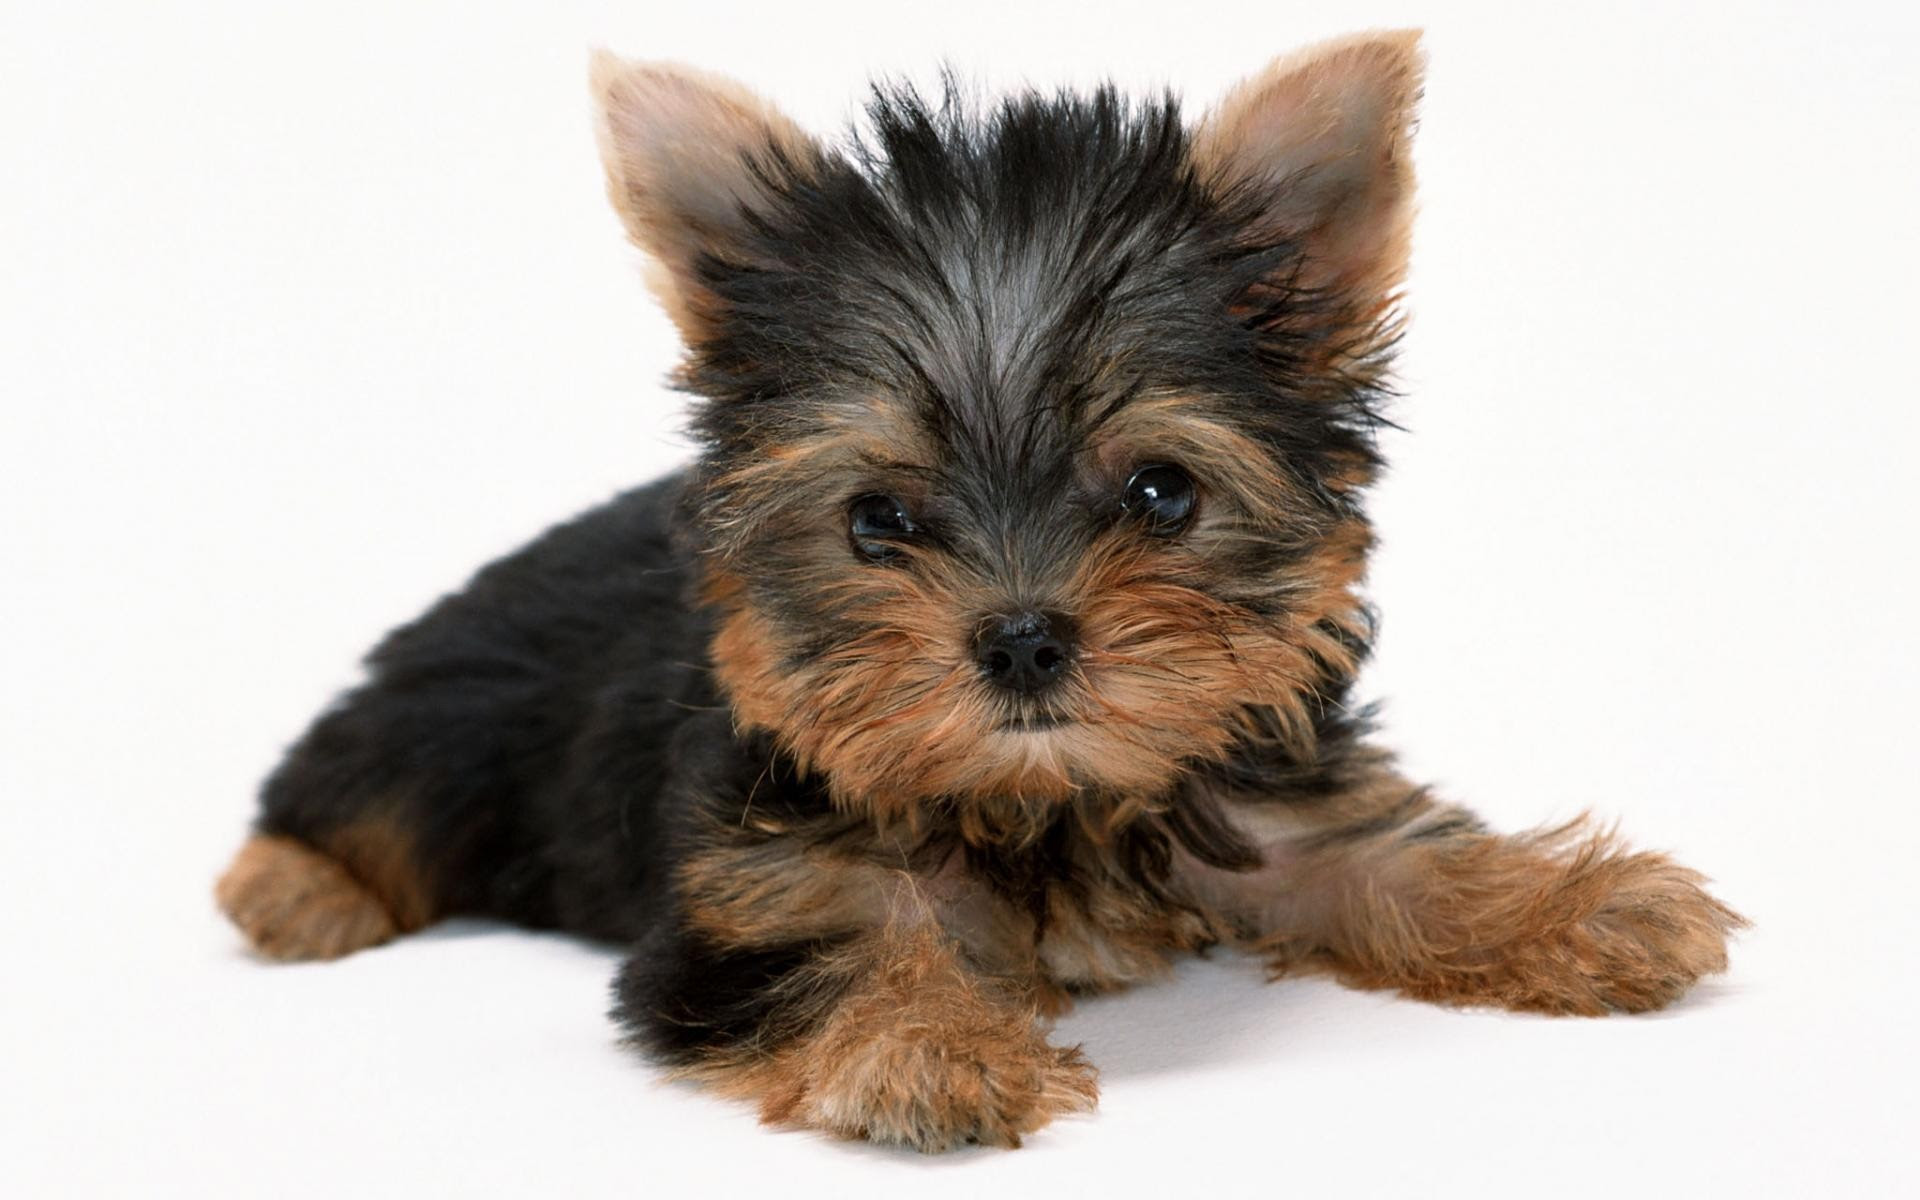 Yorkie Teddy Bear Haircut Pictures Wallpaper Yorkie Haircuts